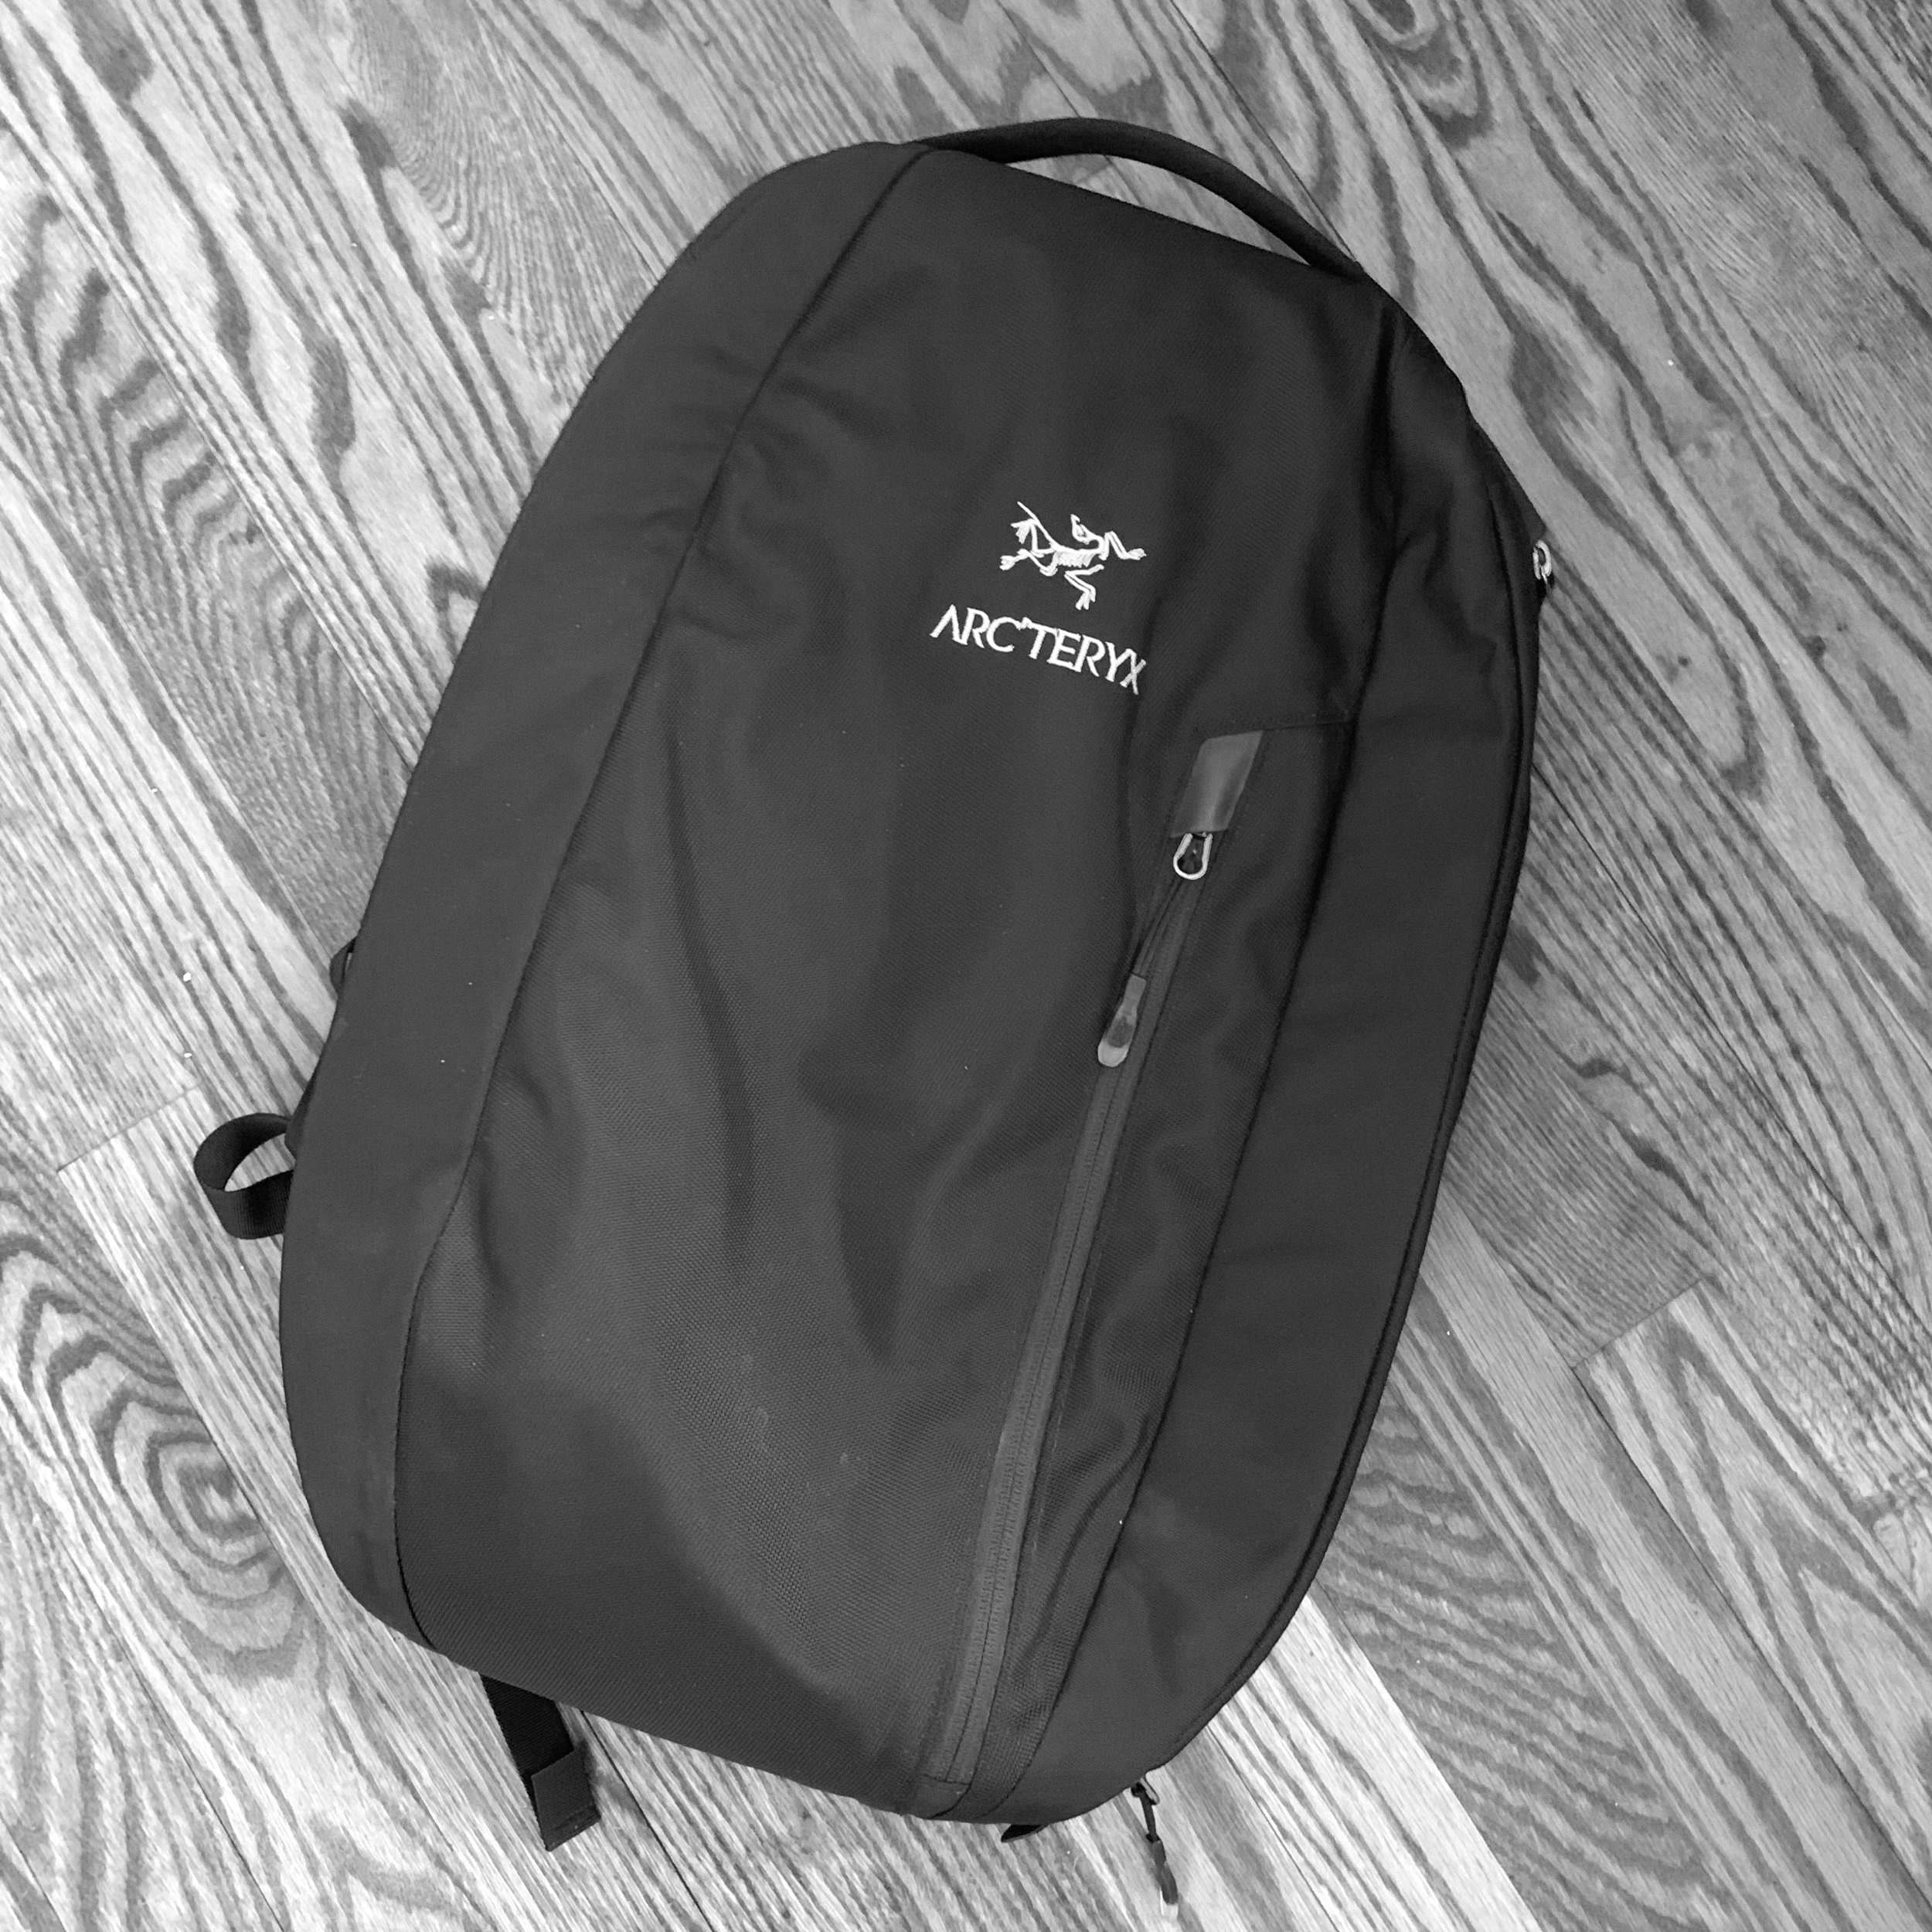 Arc'teryx Blade 15 - 15 Liters (old model)